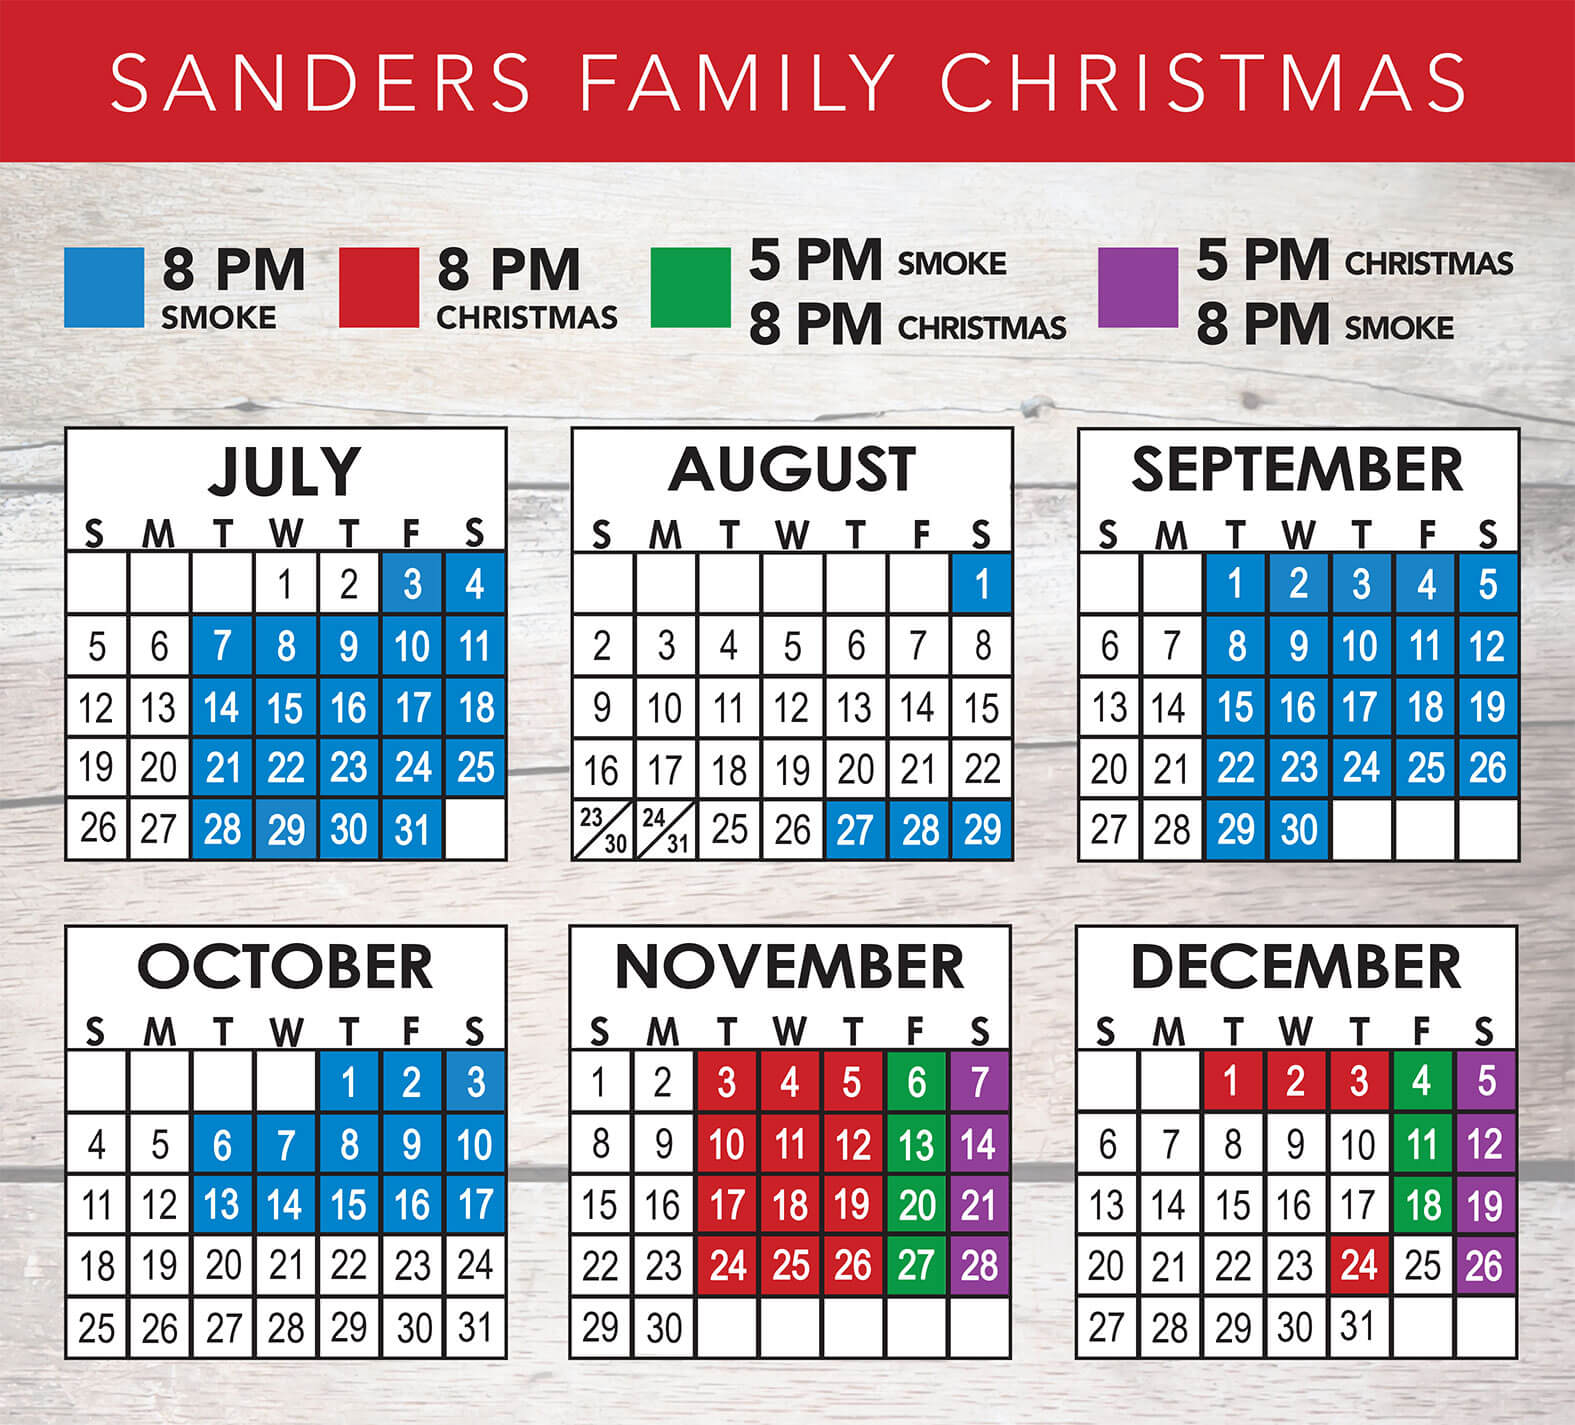 Sanders Family Christmas 2020 Schedule